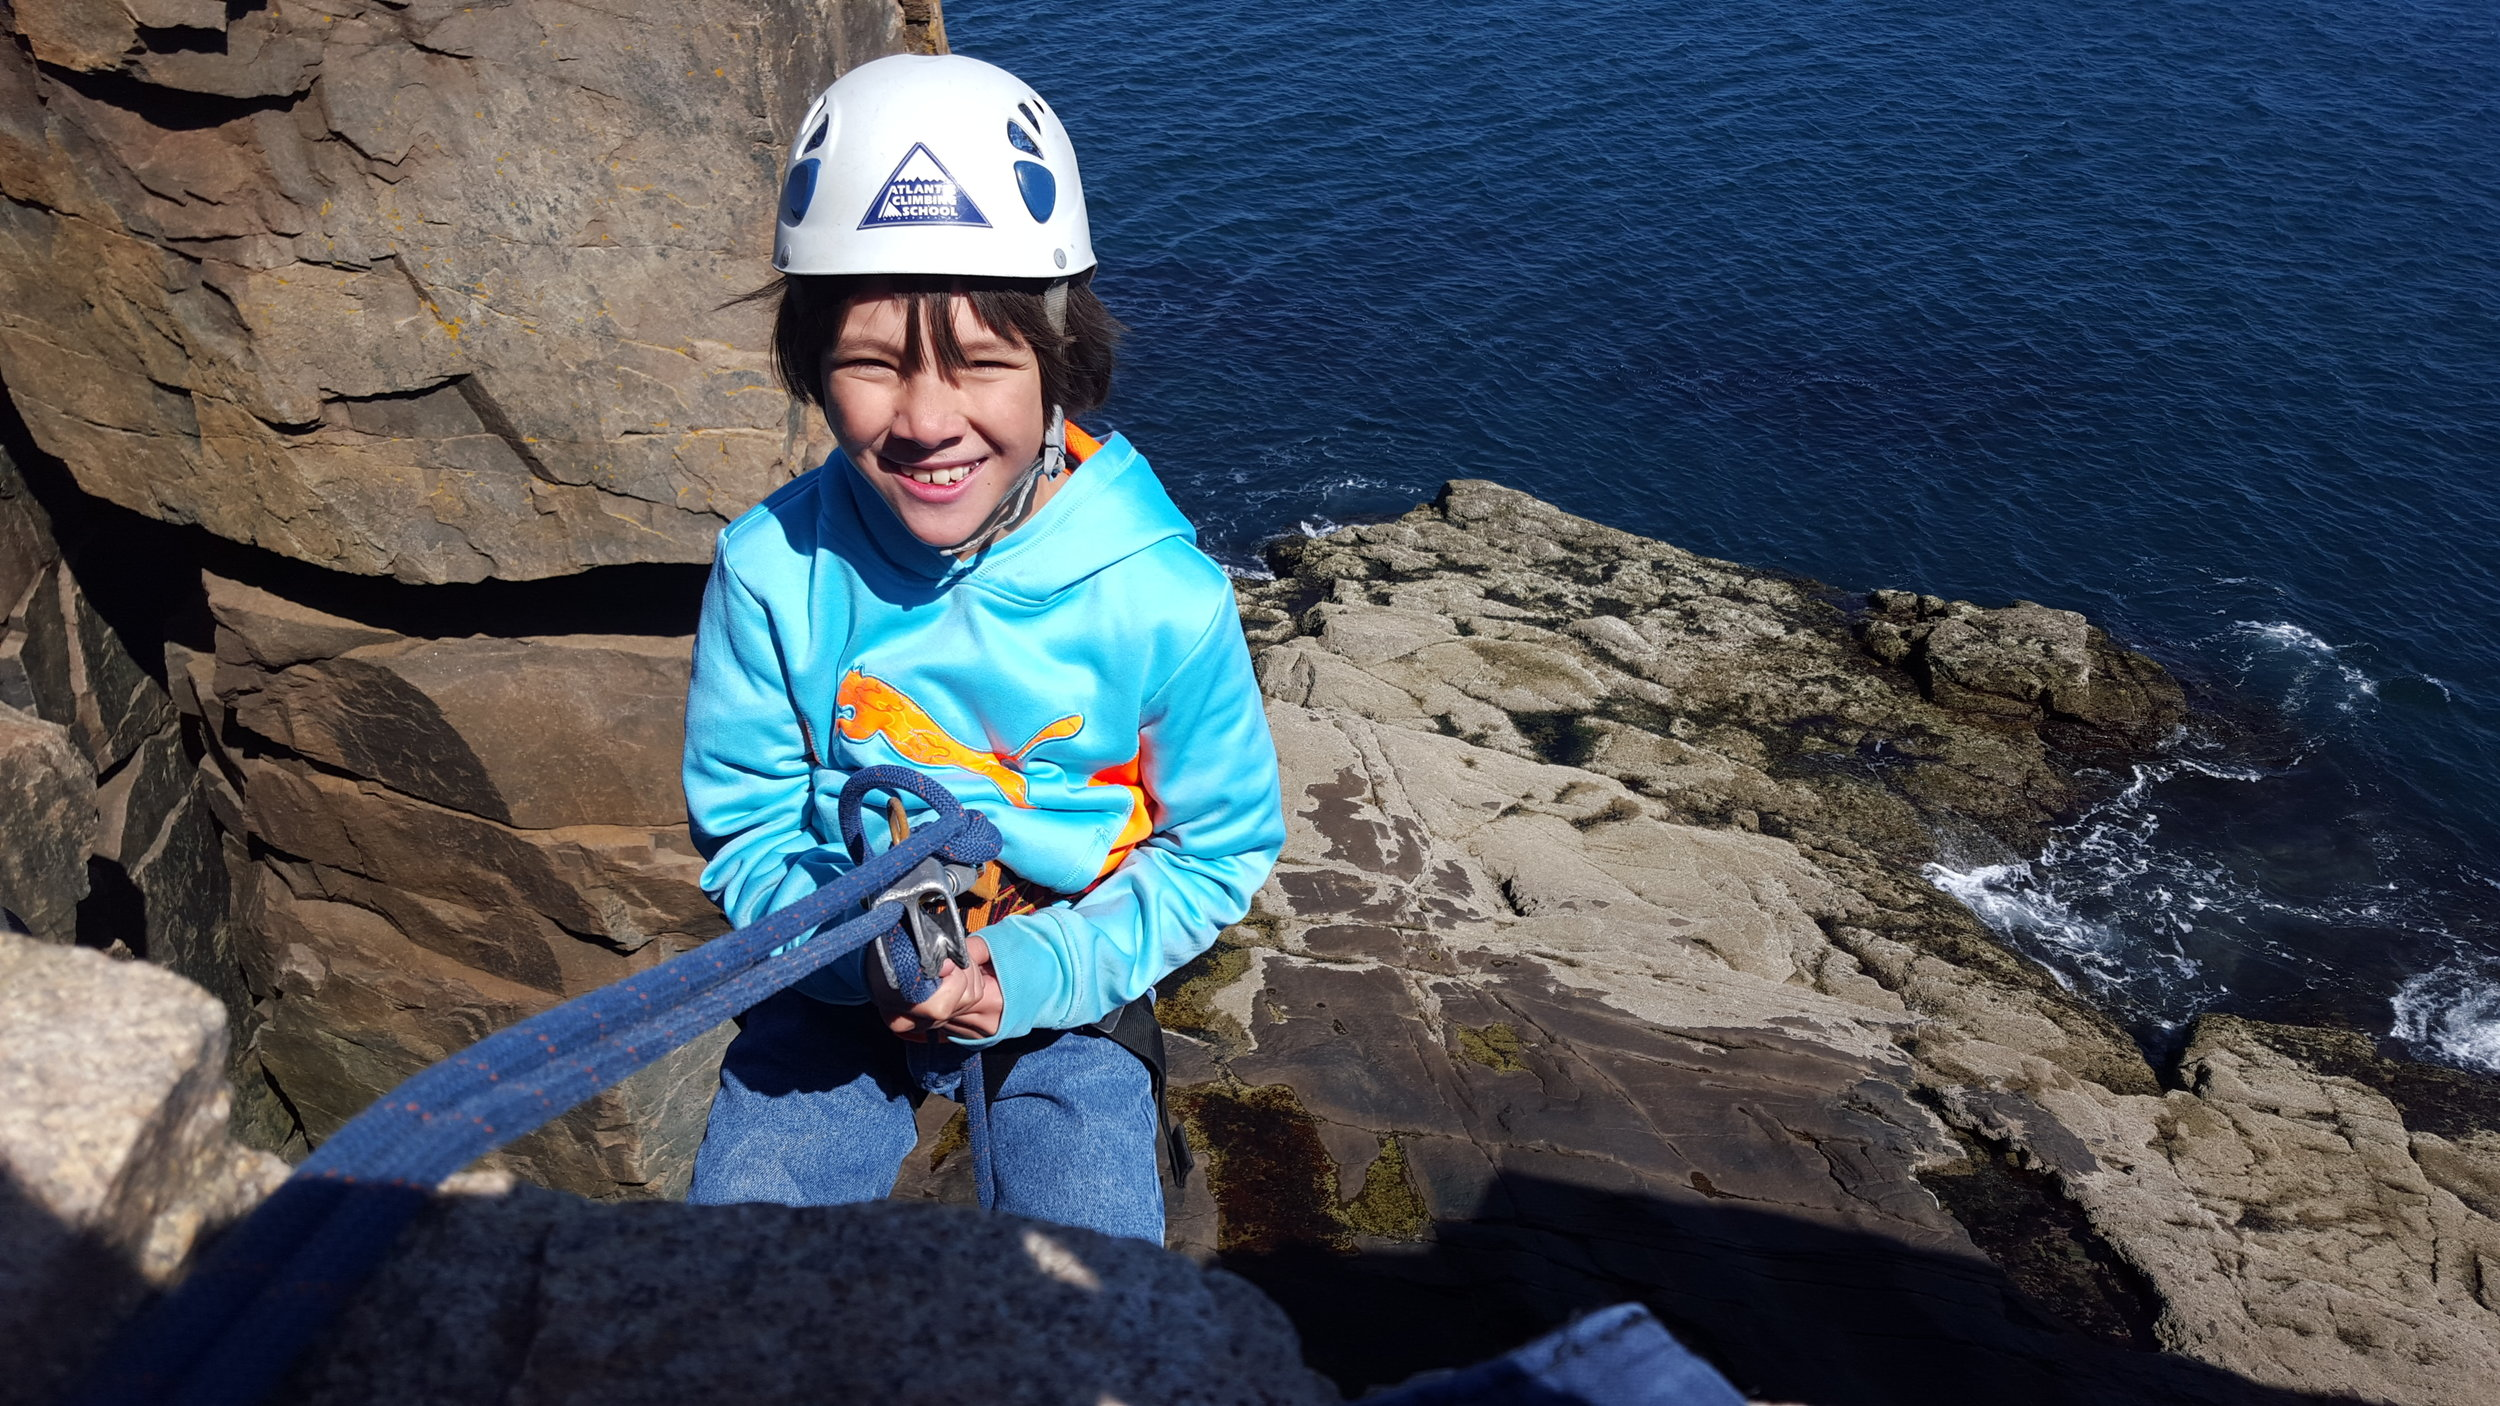 Rock climbing, whitewater rafting, treetop adventures courses -- take kids out of their comfort zone, and you might be surprised at the results!